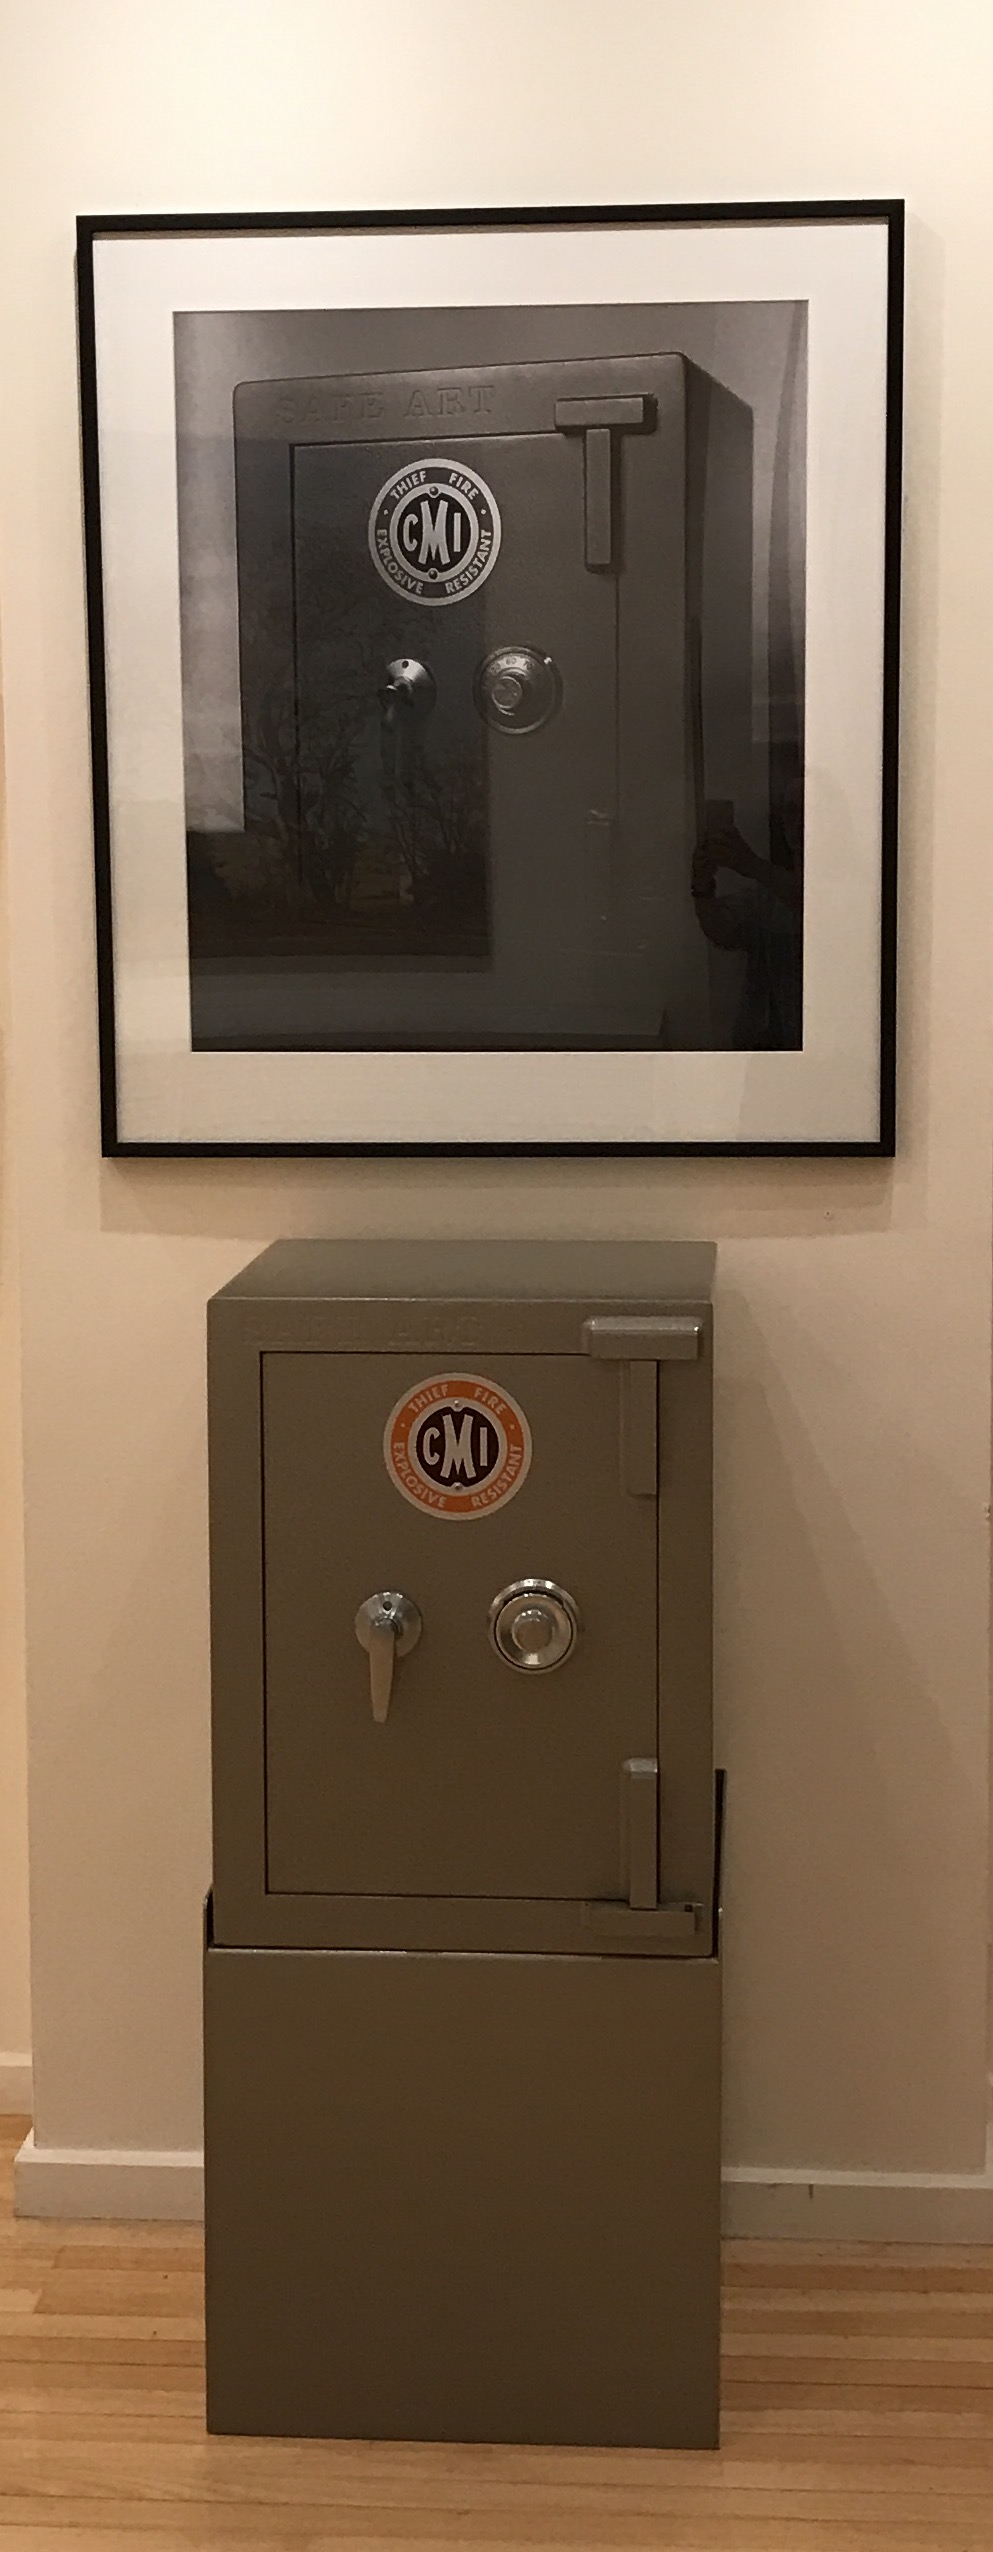 Safe art + photograph of original safe